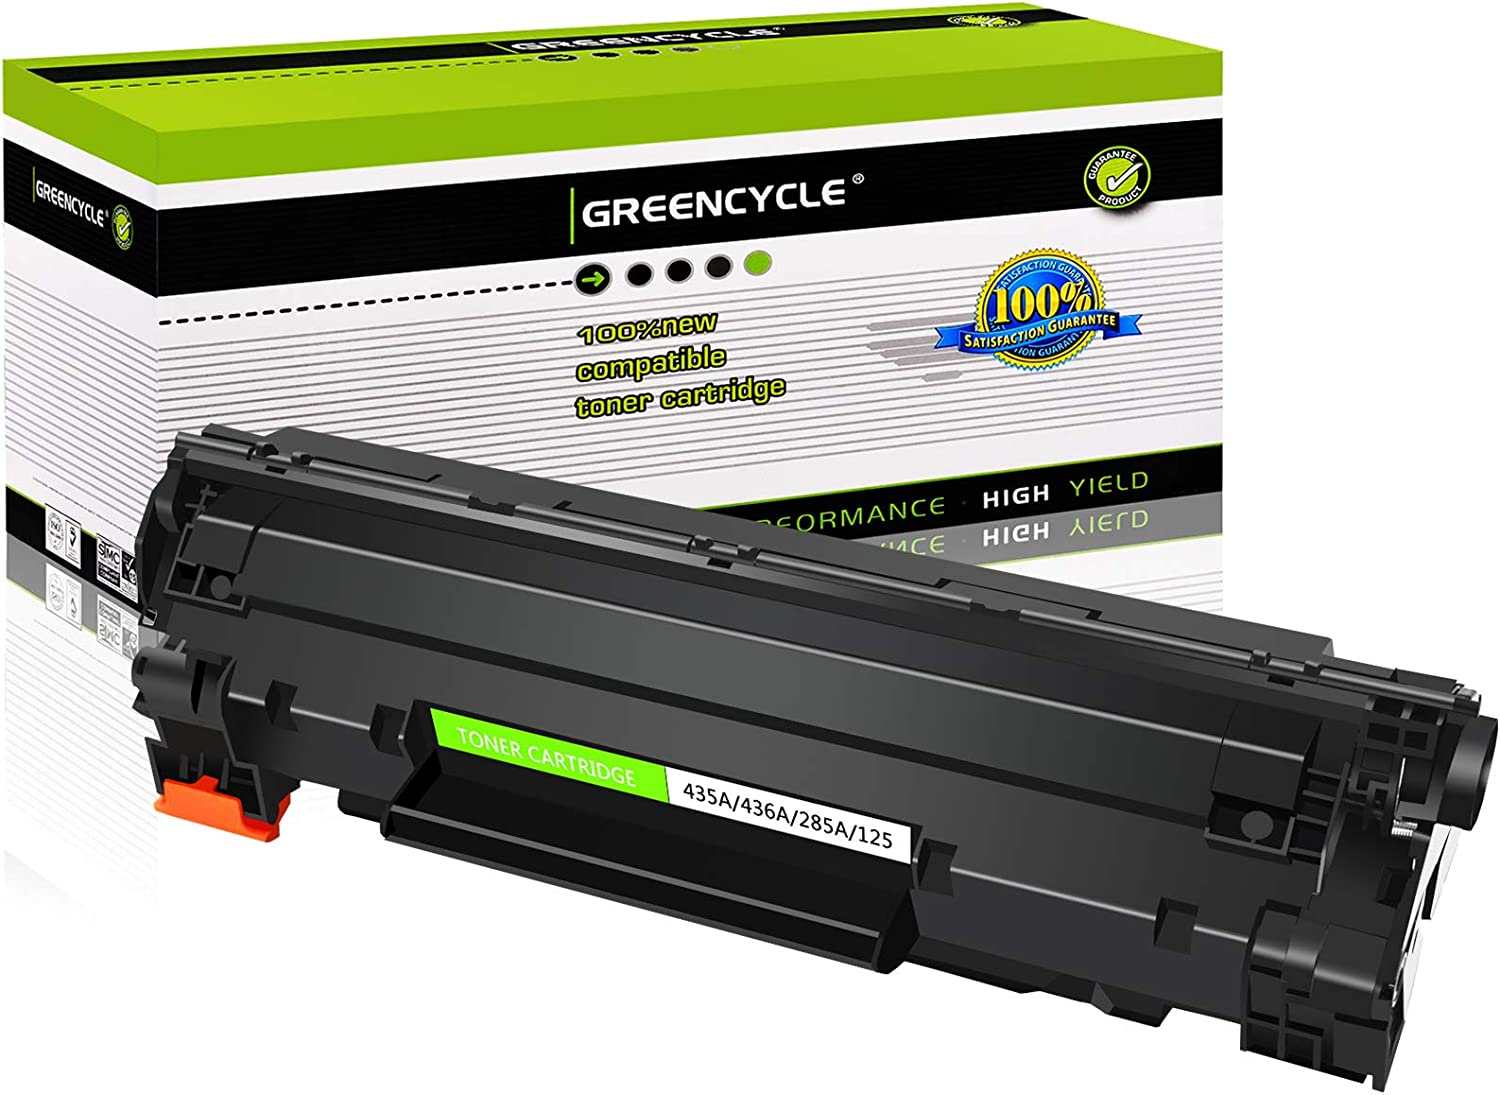 GREENCYCLE 1 Pack Compatible CB435A 35A Black Toner Cartridge Replacement for HP Laserjet P1005 P1006 P1007 P1008 P1009 Printer